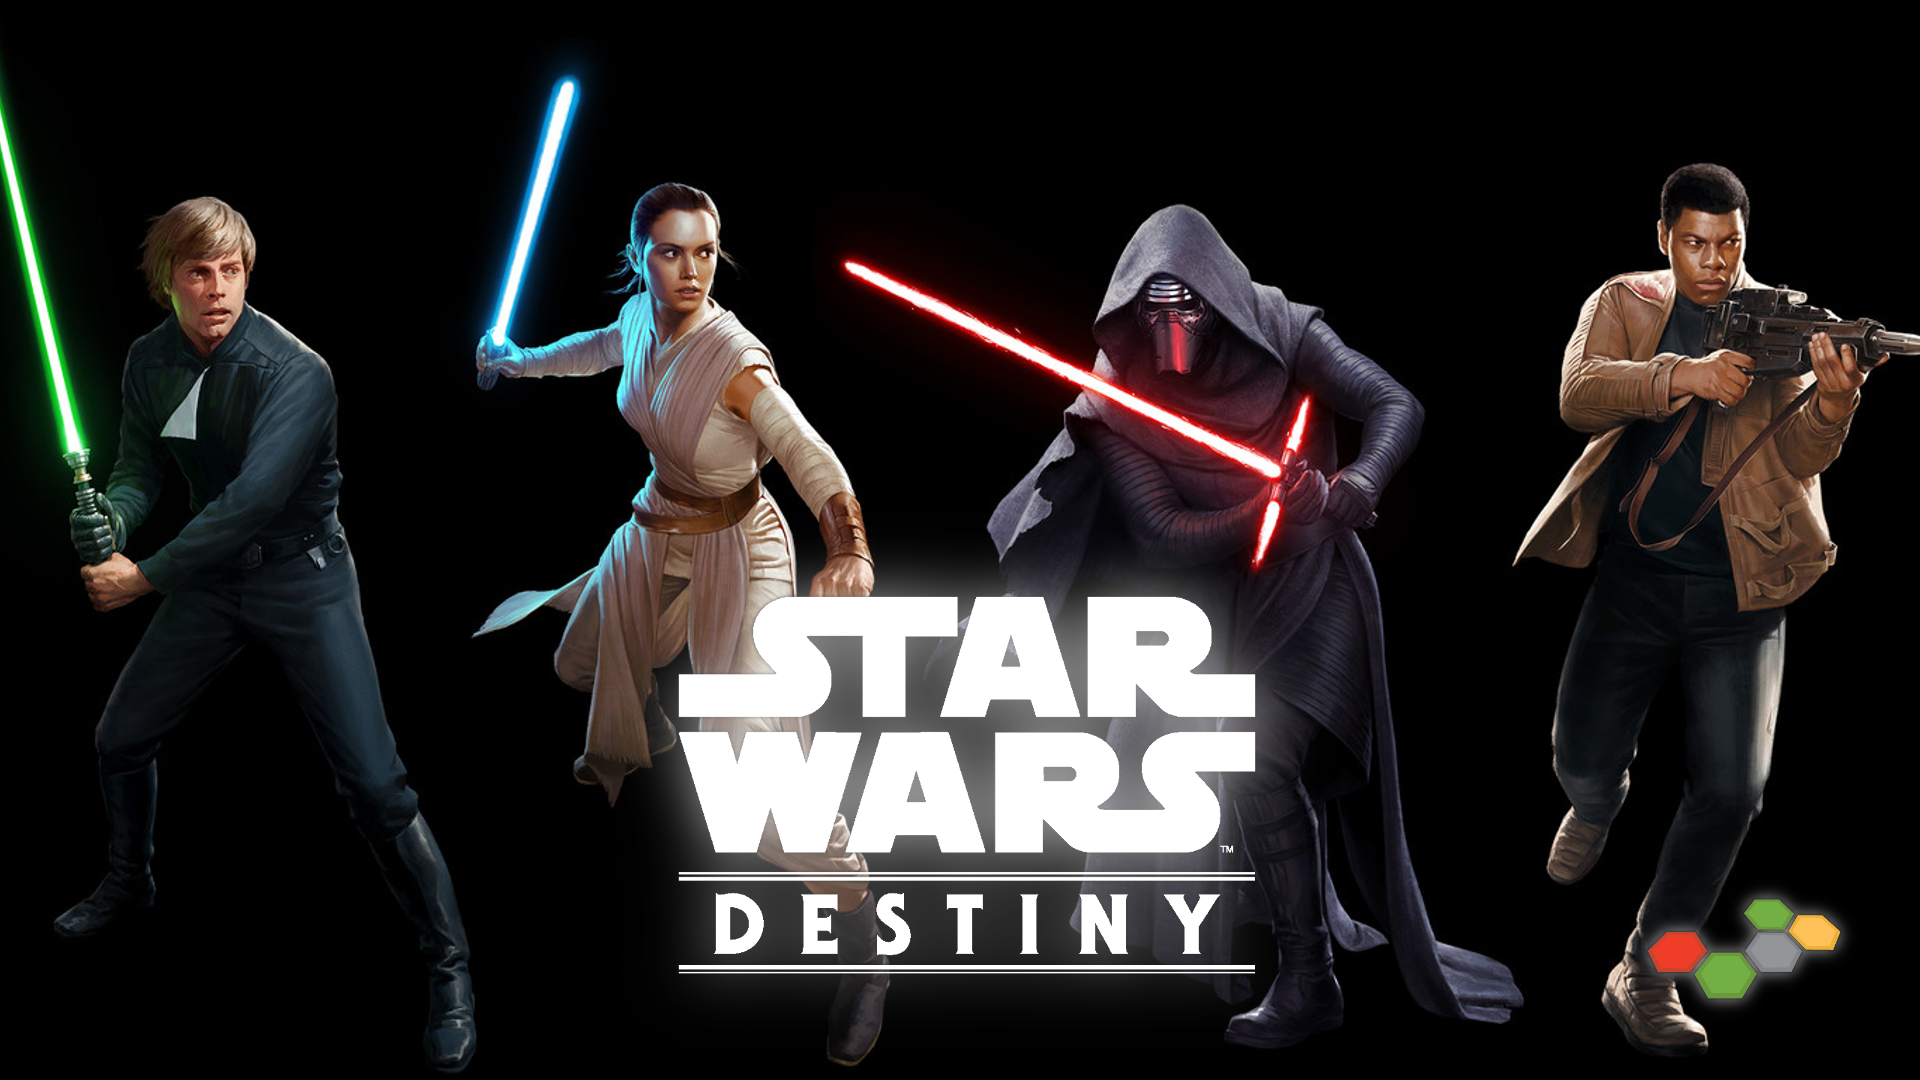 star wars destiny art and logo white text.png